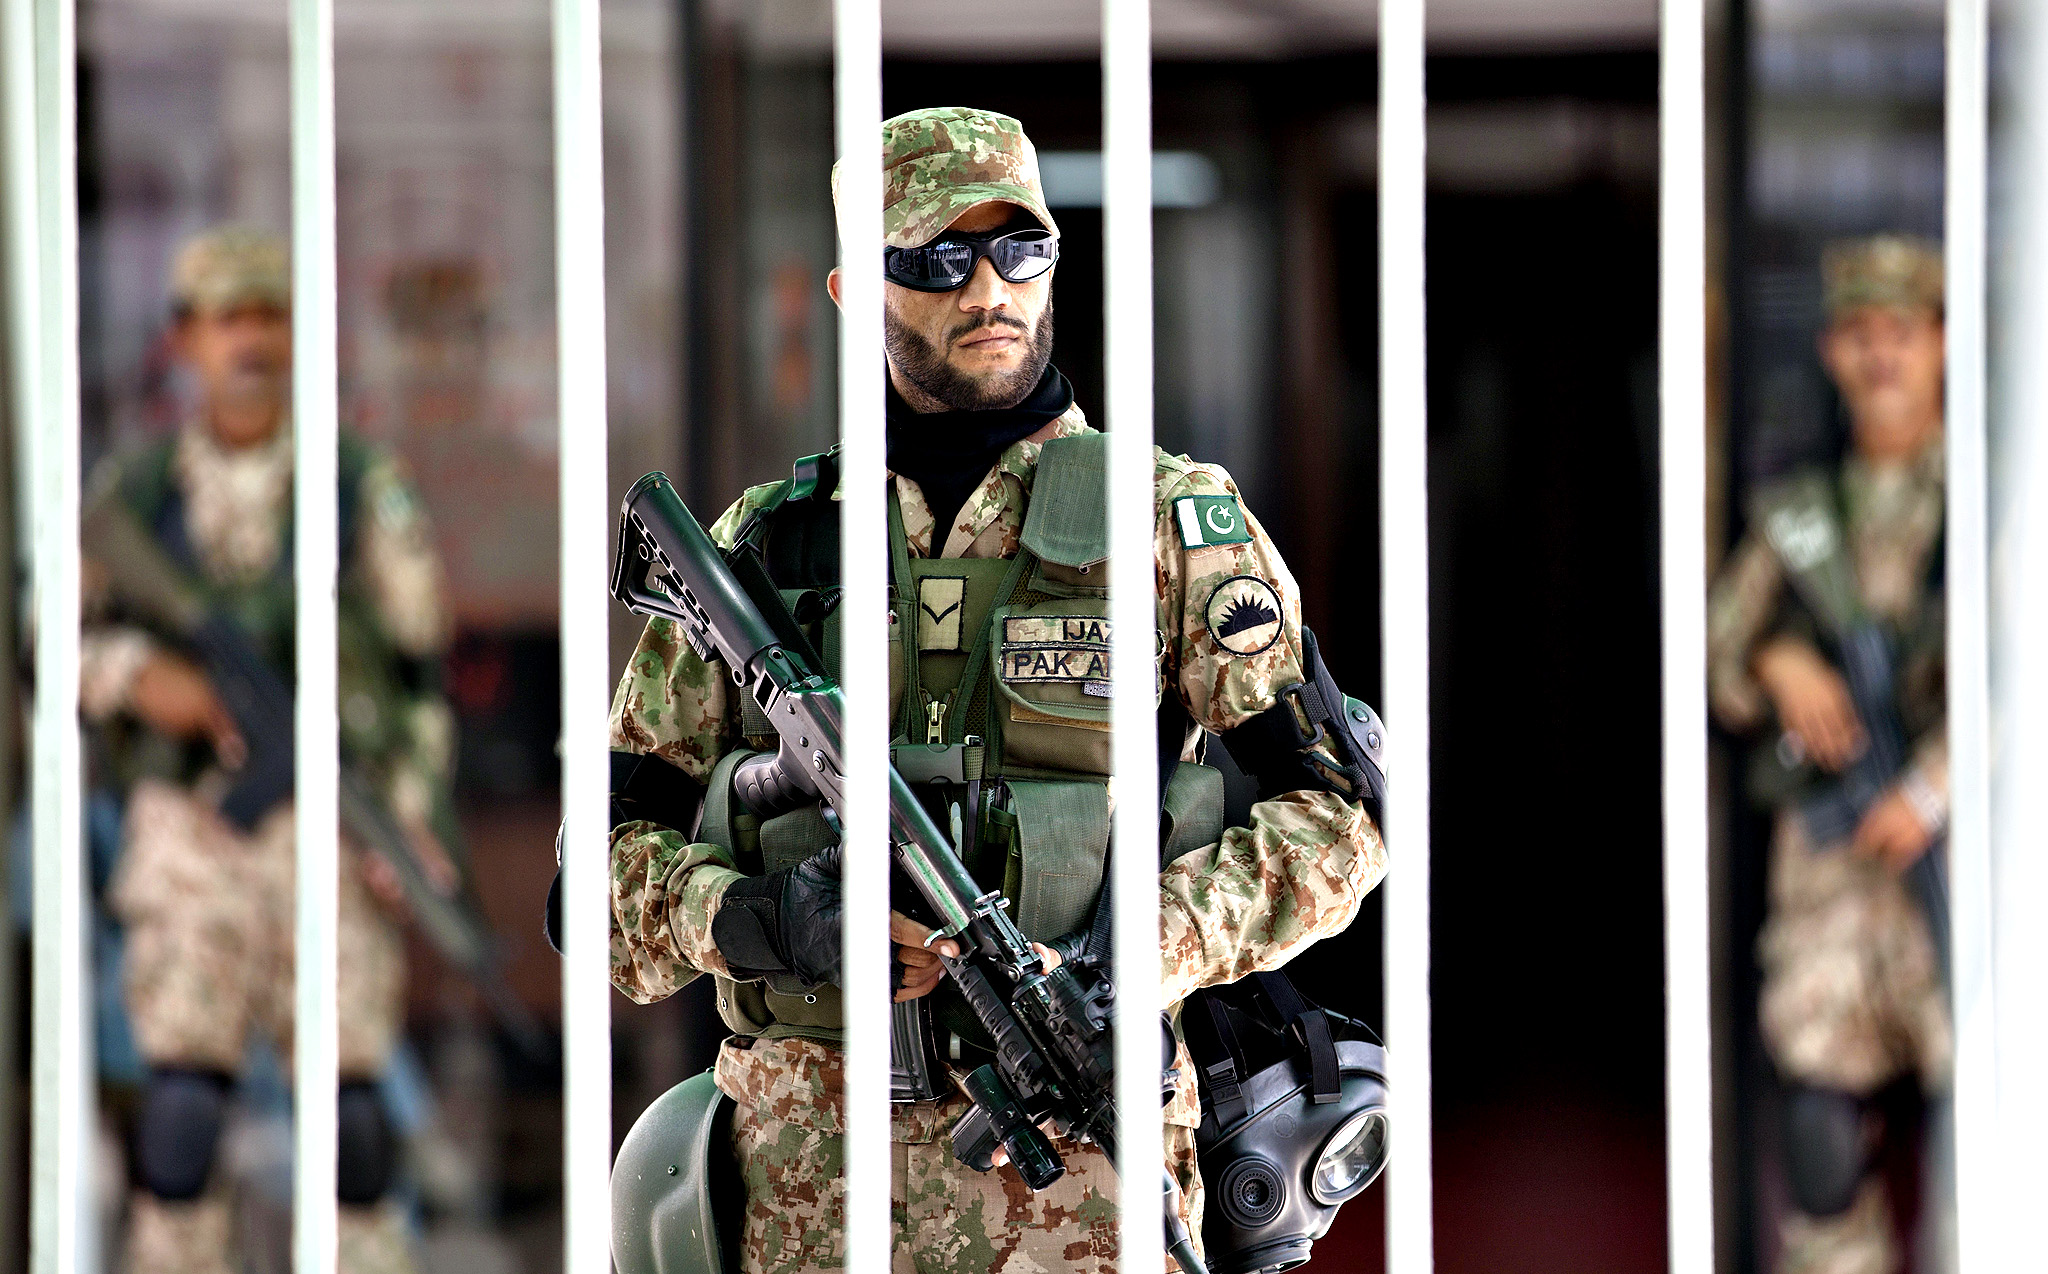 Pakistani army soldiers stand alert inside the parliament building during an emergency session in Islamabad, Pakistan, Tuesday, Sept. 2, 2014. Lawmakers met over the political crisis roiling the country as thousands of anti-government protesters remained camped out in front of the parliament building, demanding Prime Minister Nawaz Sharif resign.